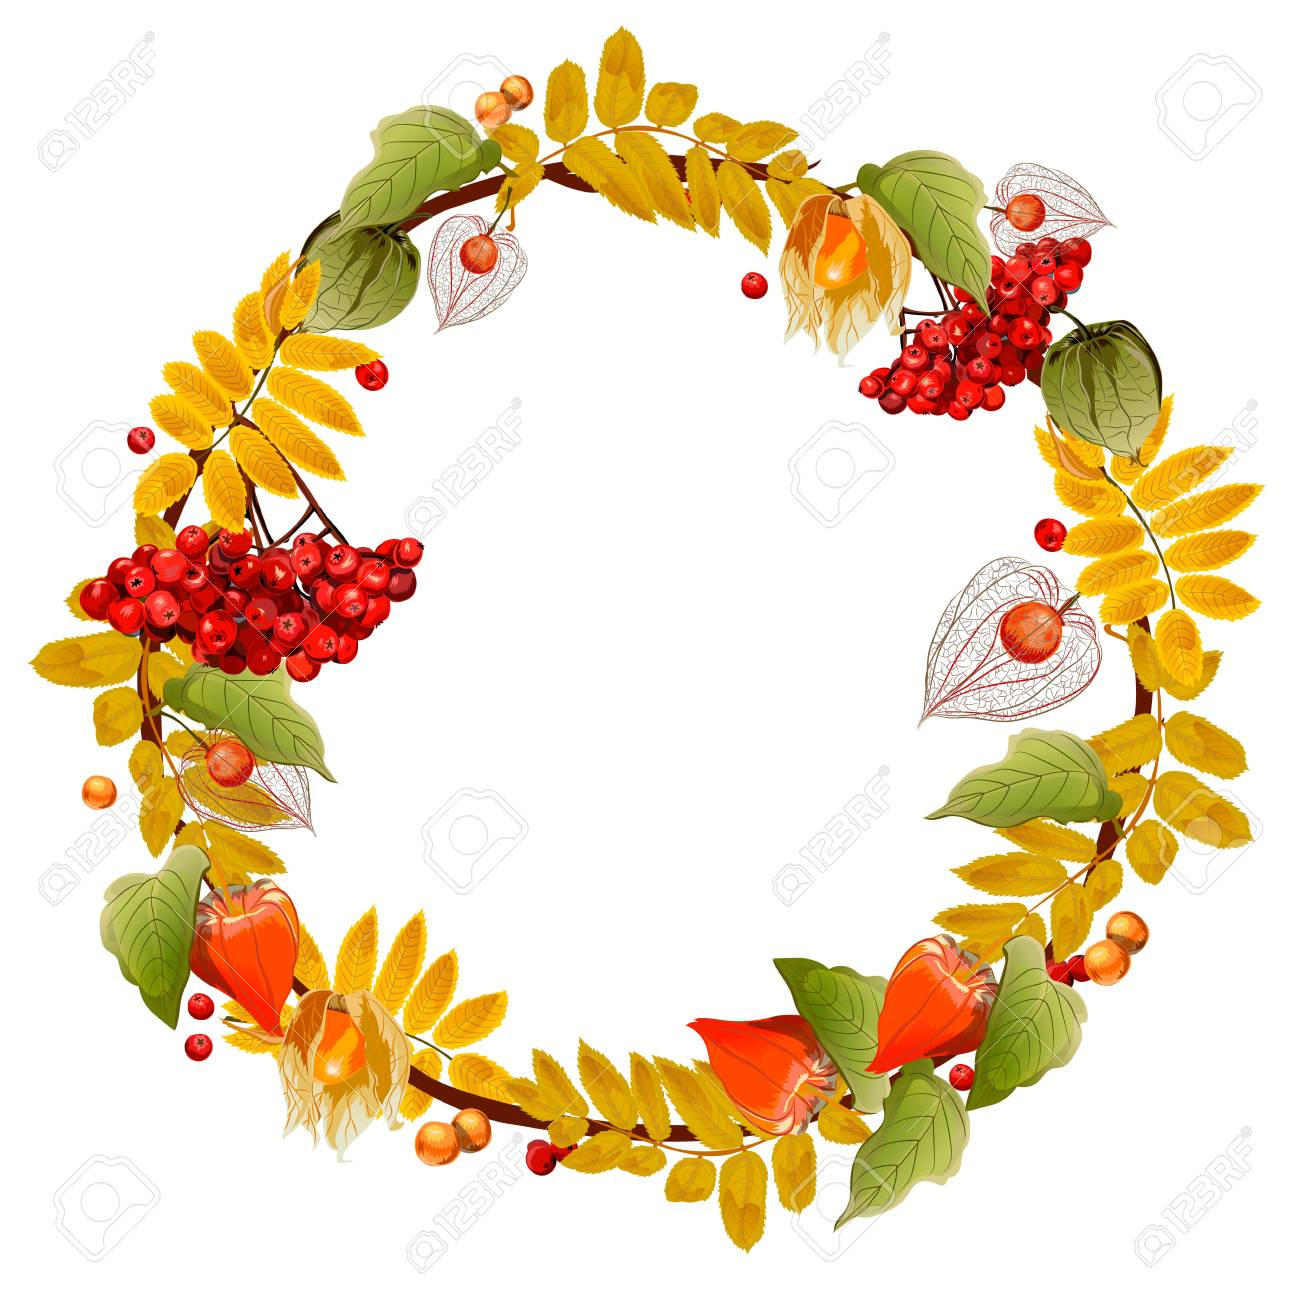 Autumn wreath of physalis and mountain ash. Isolated image. For postcards, posters, congratulations, approvals and other things. - 99565850